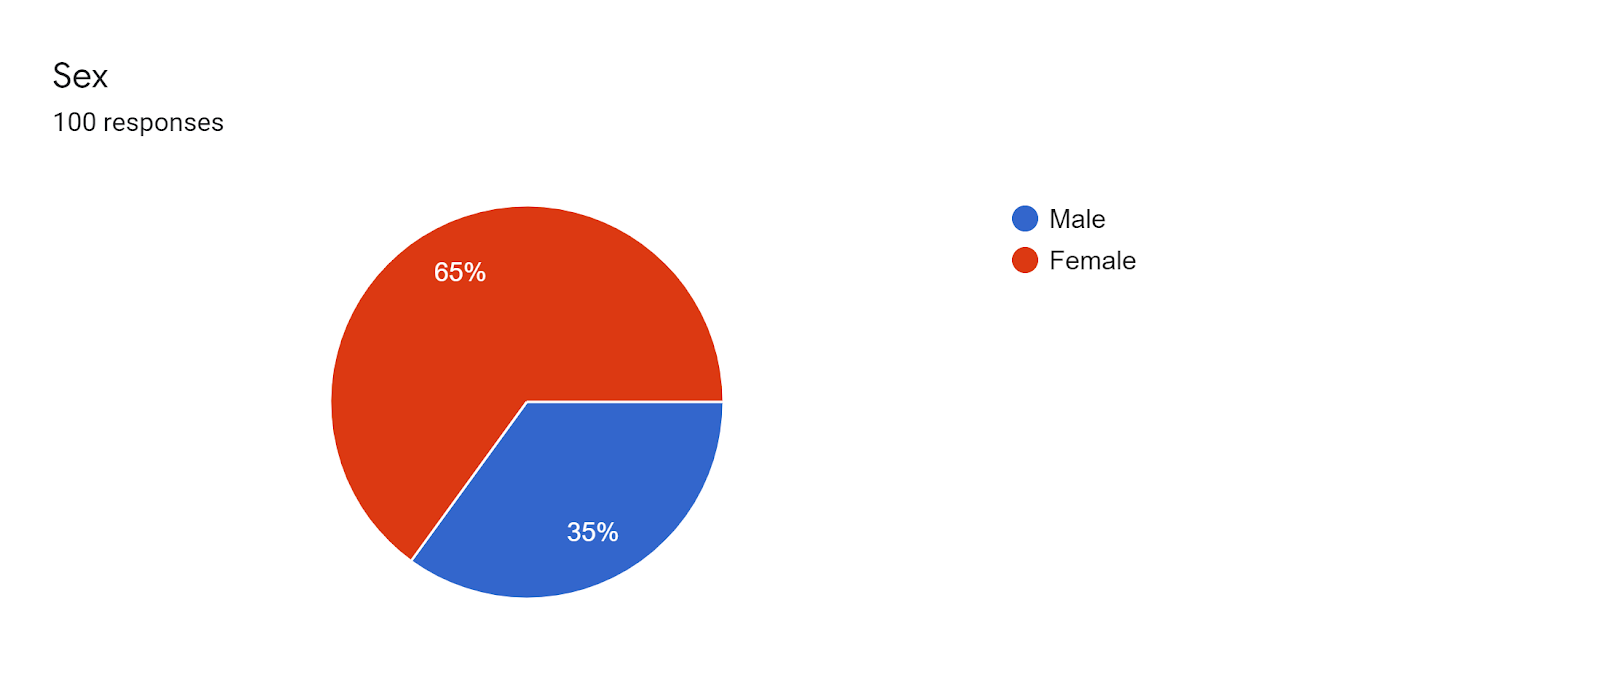 Forms response chart. Question title: Sex. Number of responses: 100 responses.